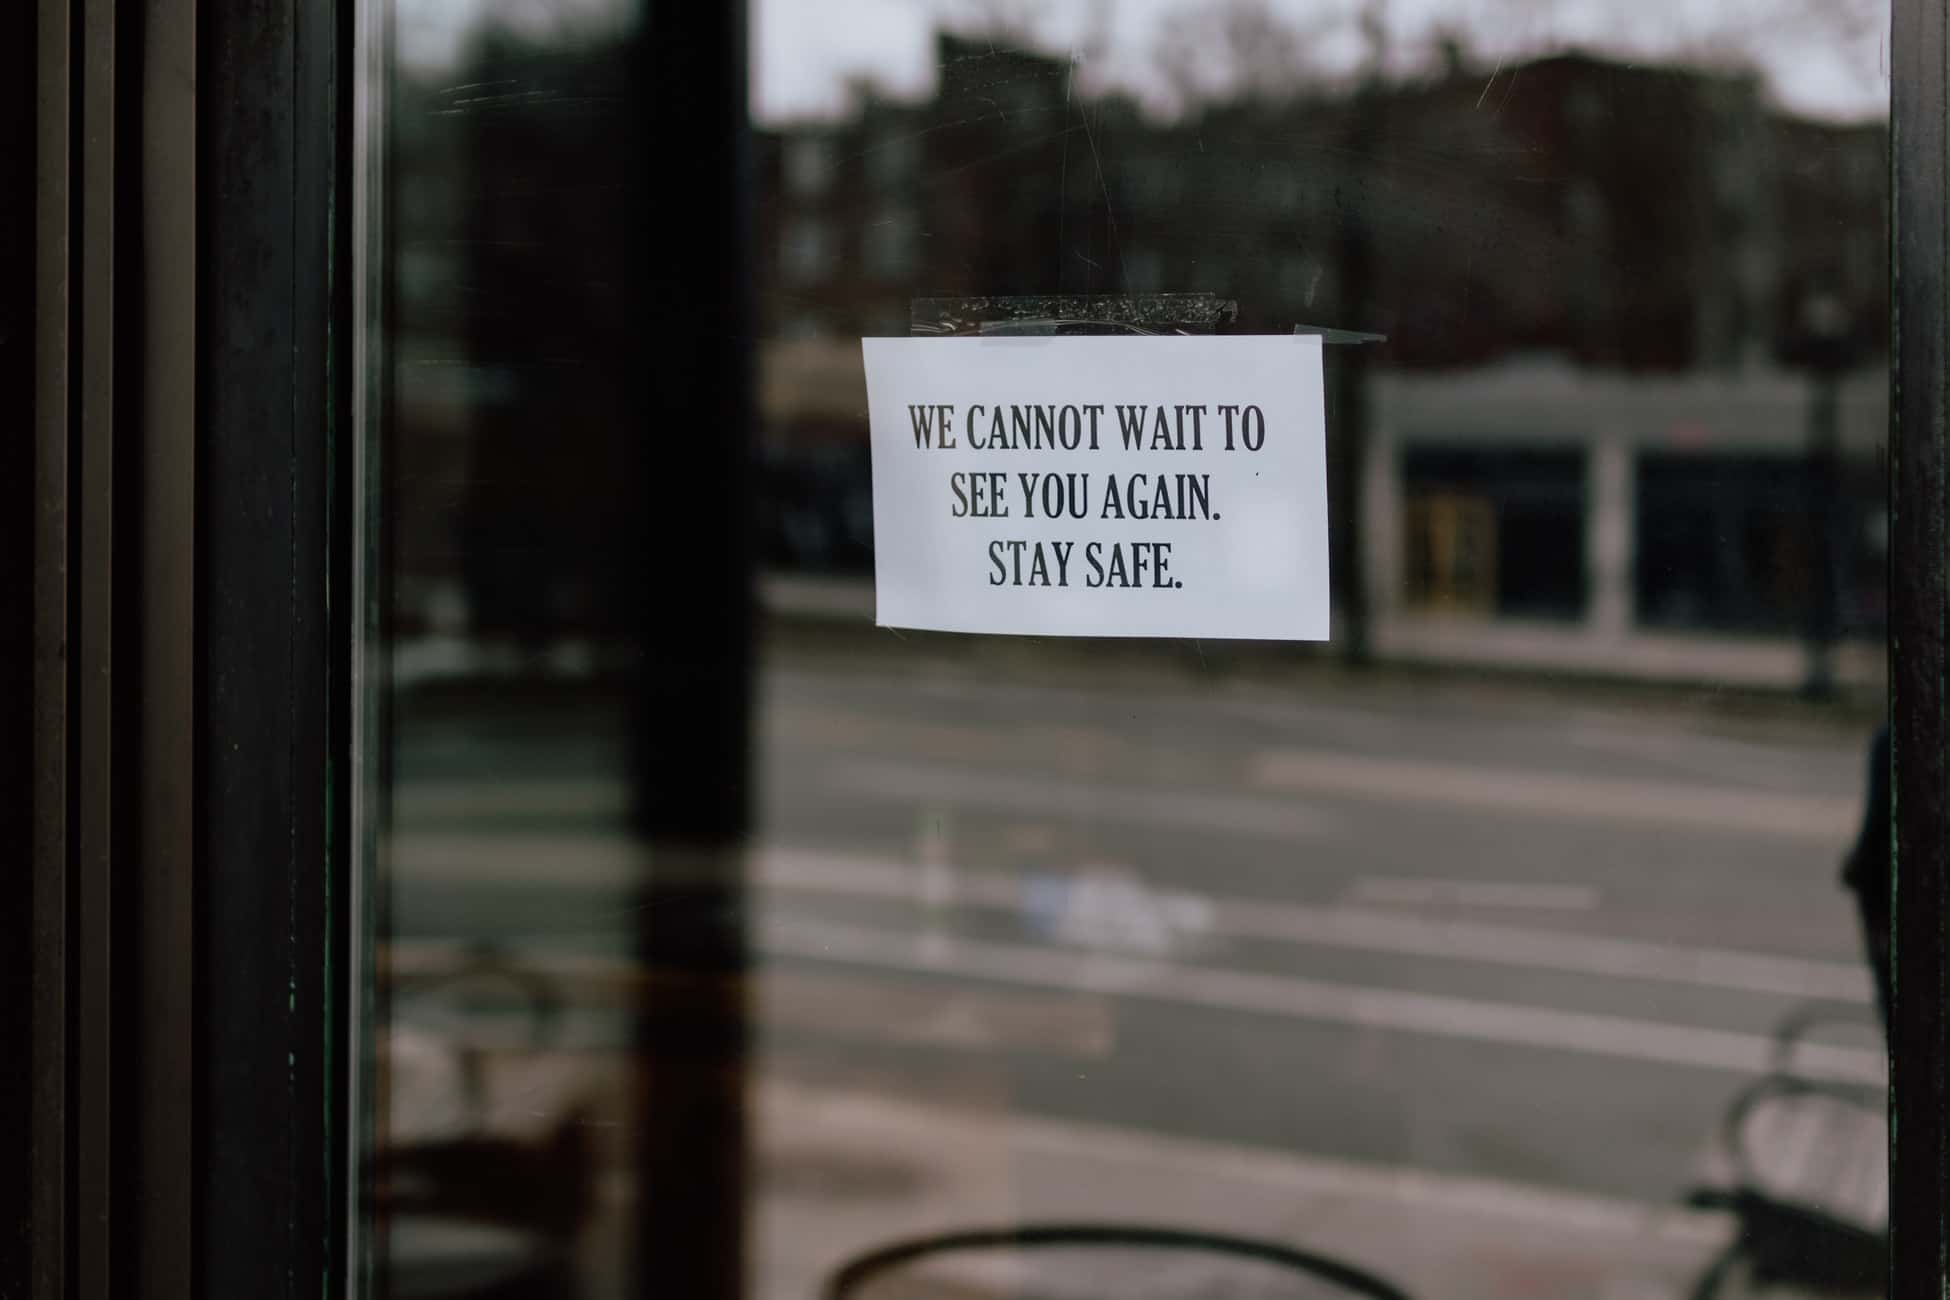 Sign in store window that reads